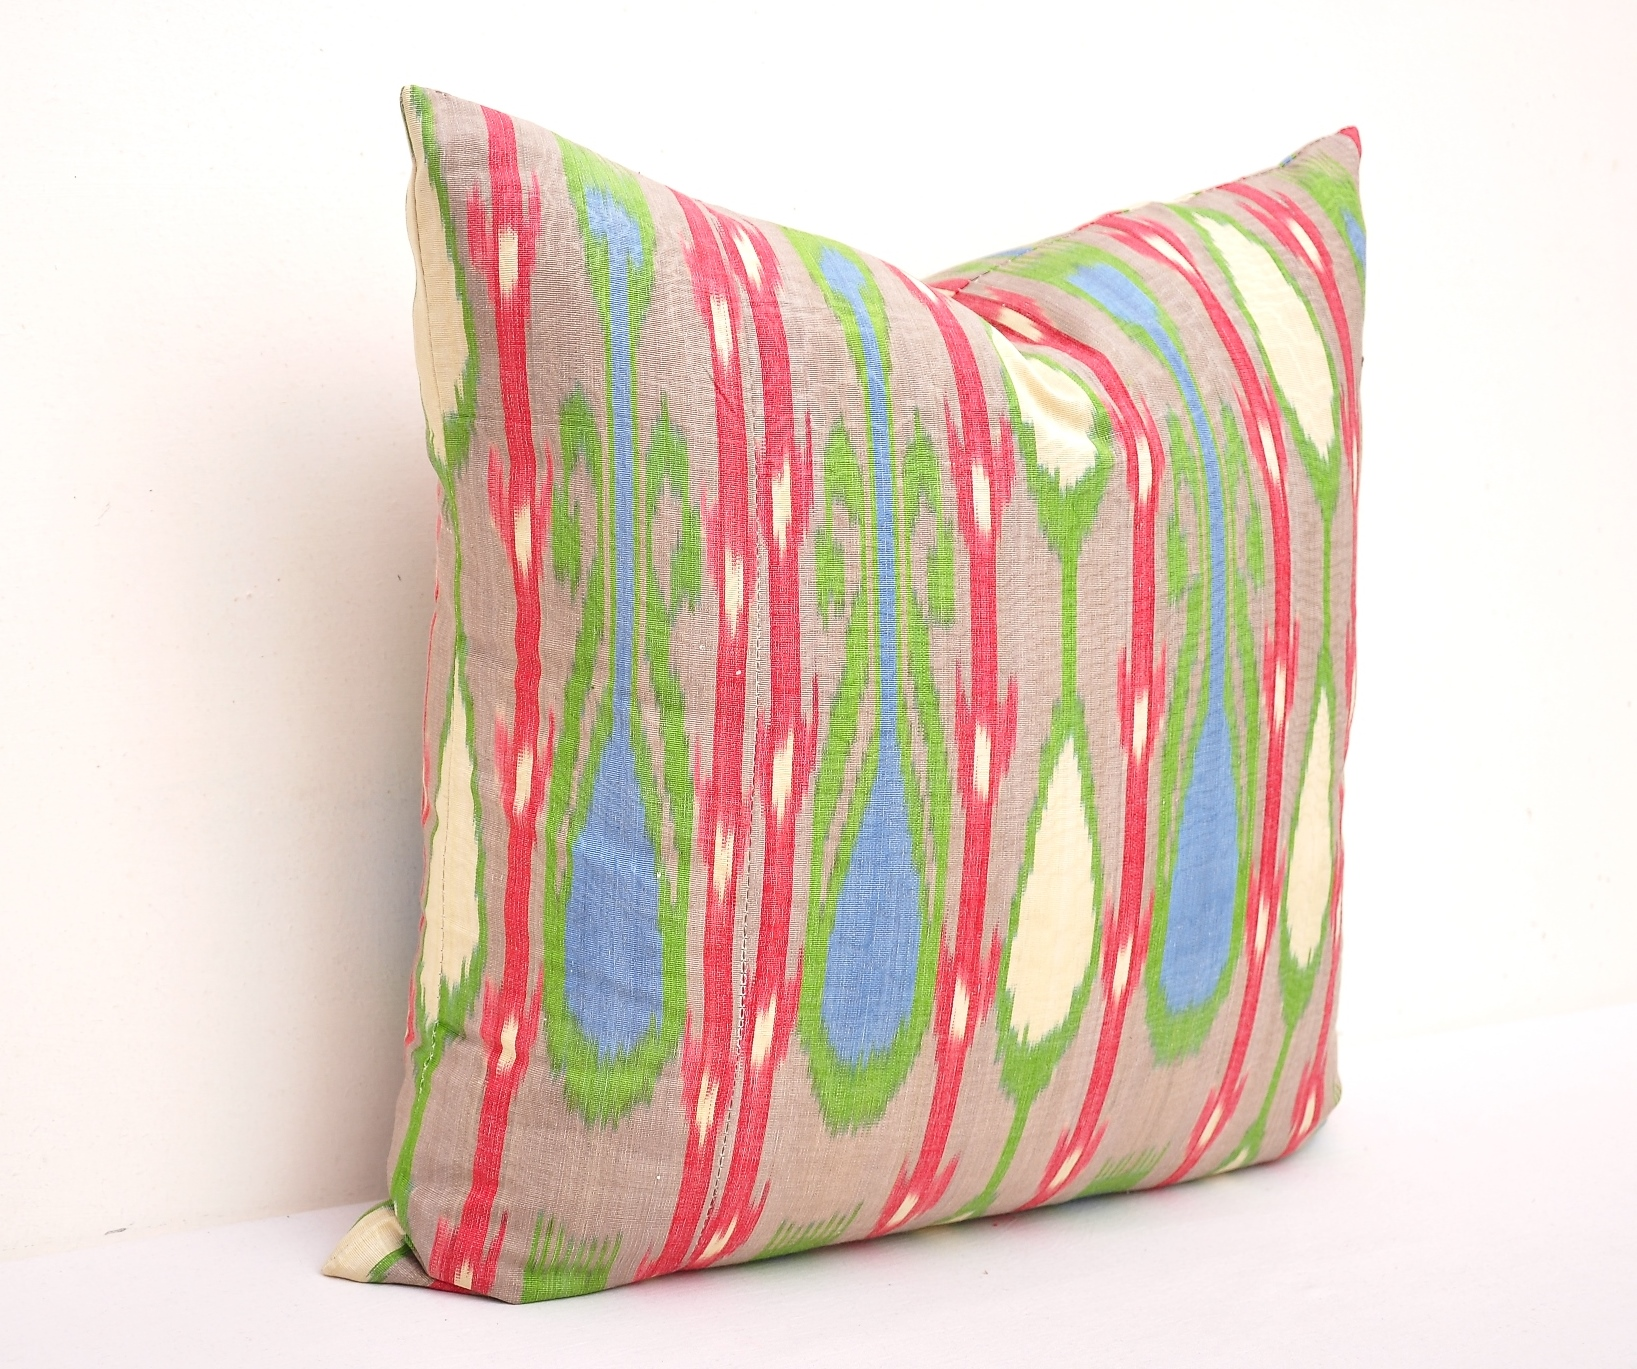 Ikat Throw Pillow Covers : Accent Pillow Ikat Throw Home Decor - Stylish Elegant Pillow Cover